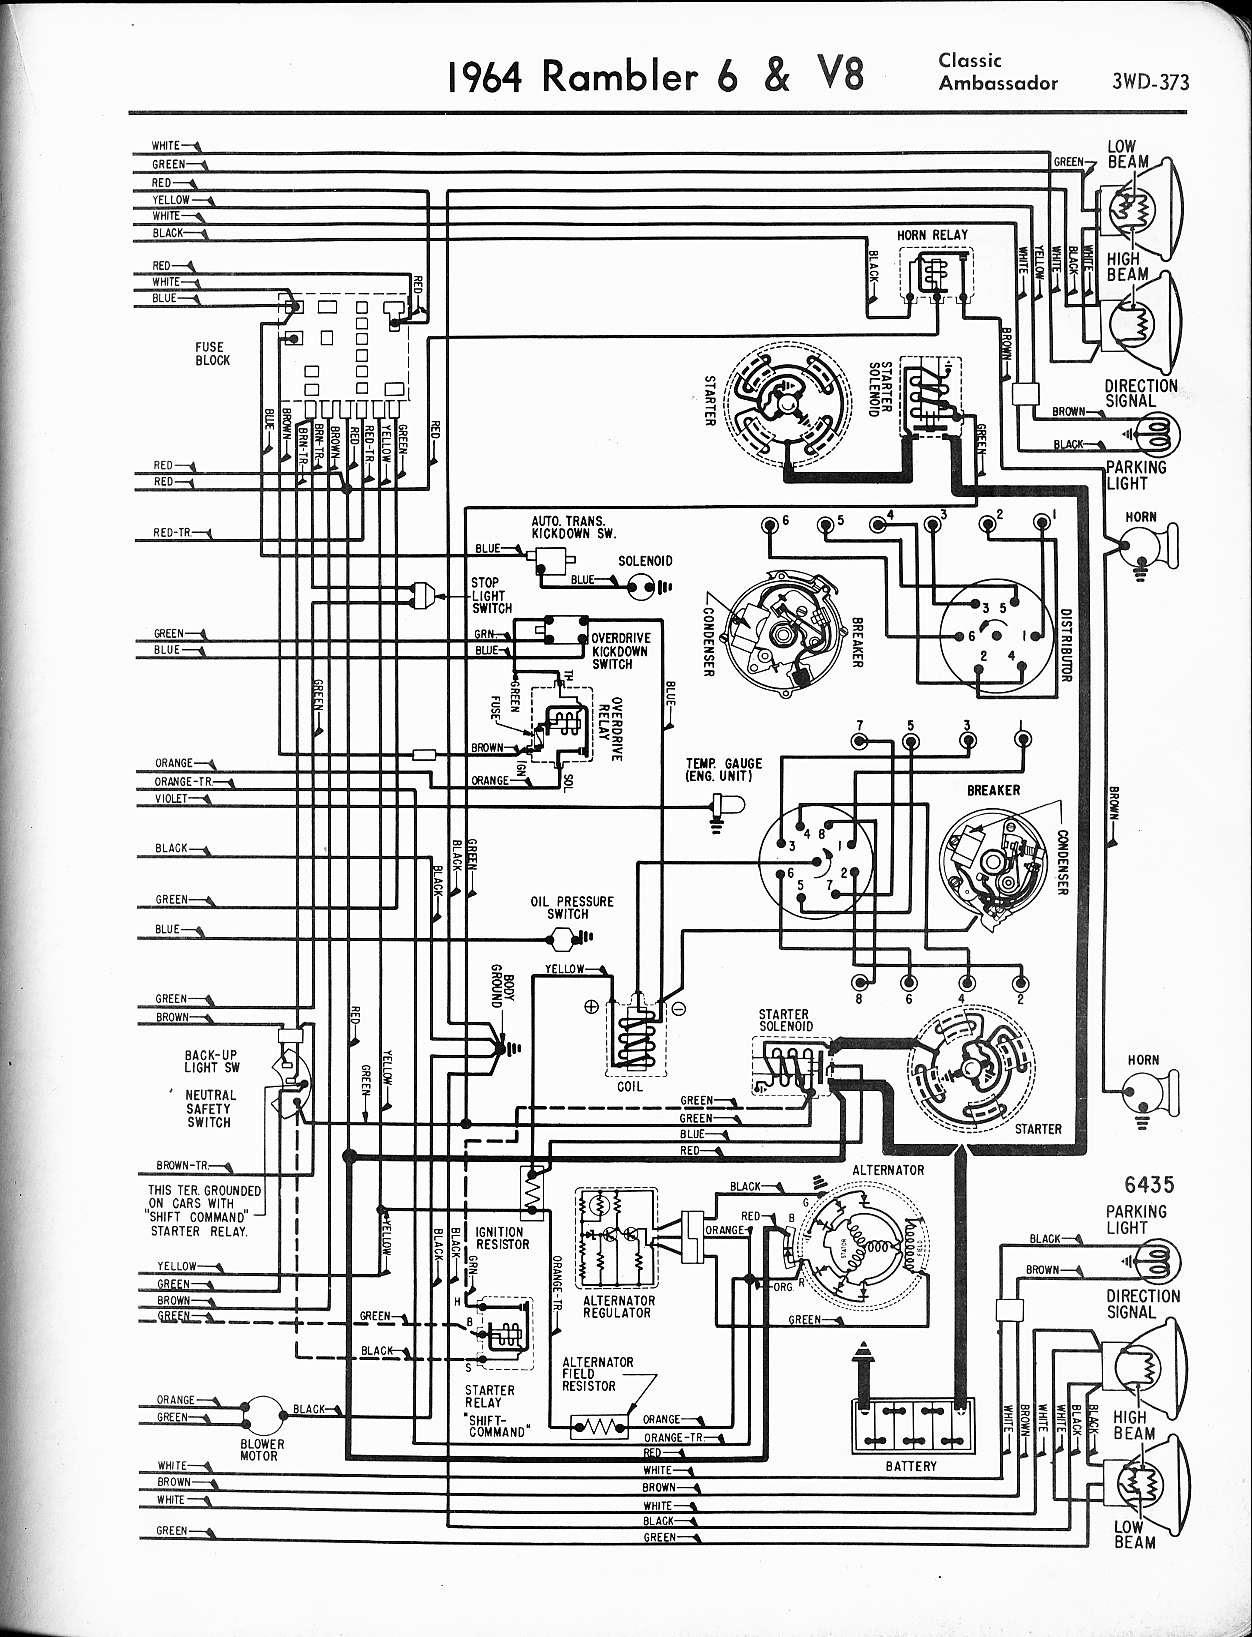 Ambassador Car Ignition Coil Wiring Diagram